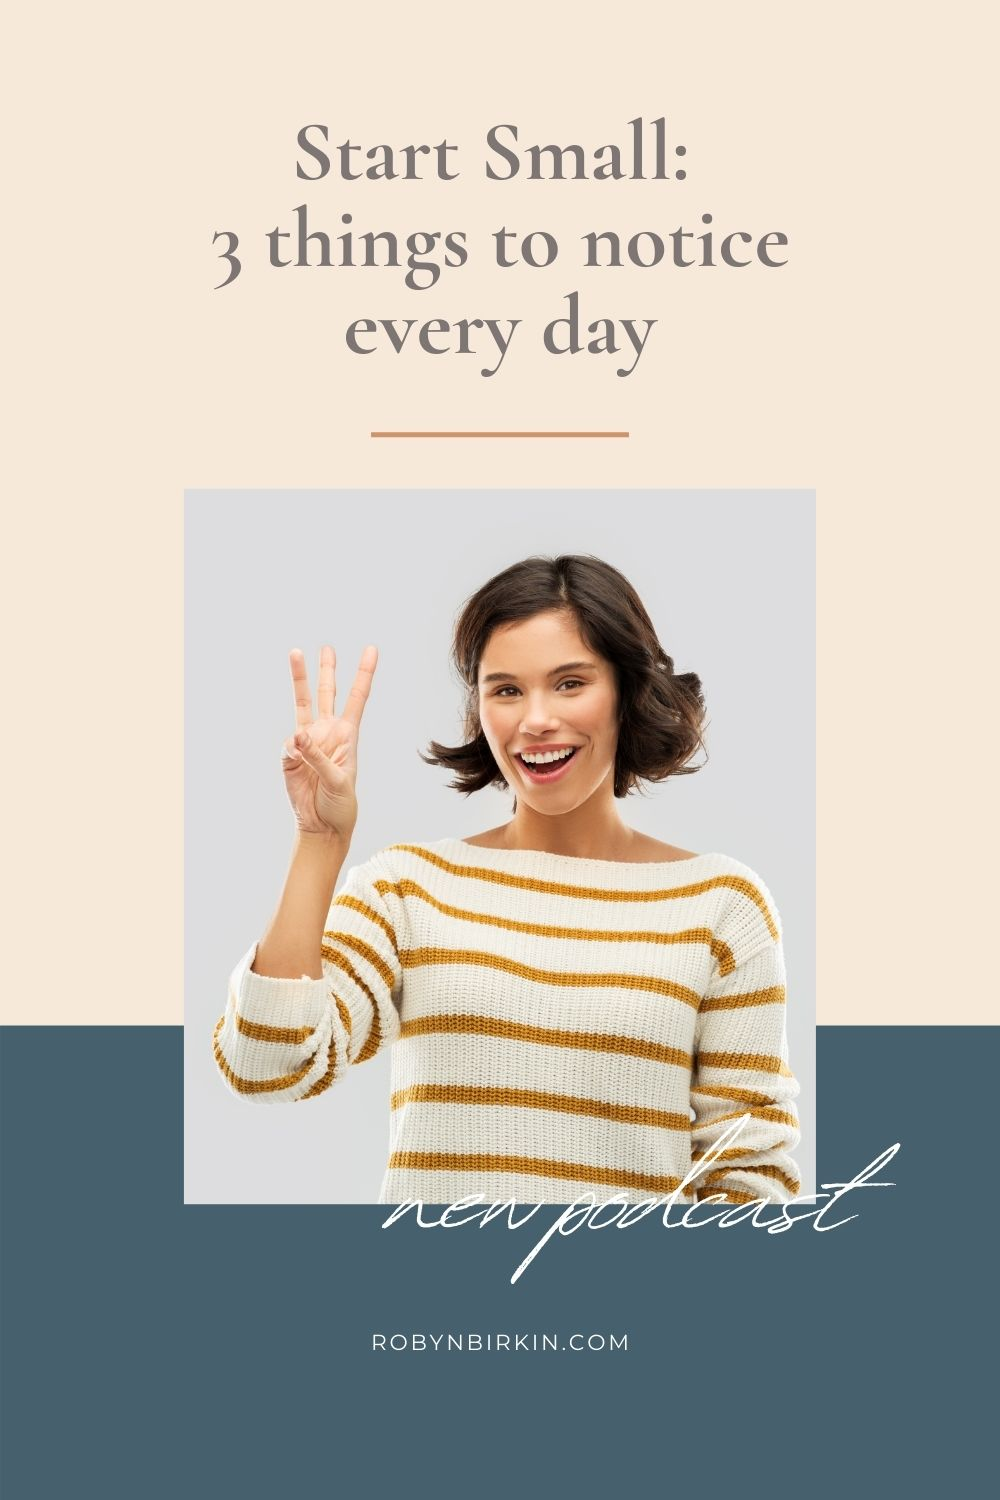 Start Small: 3 things to notice every day